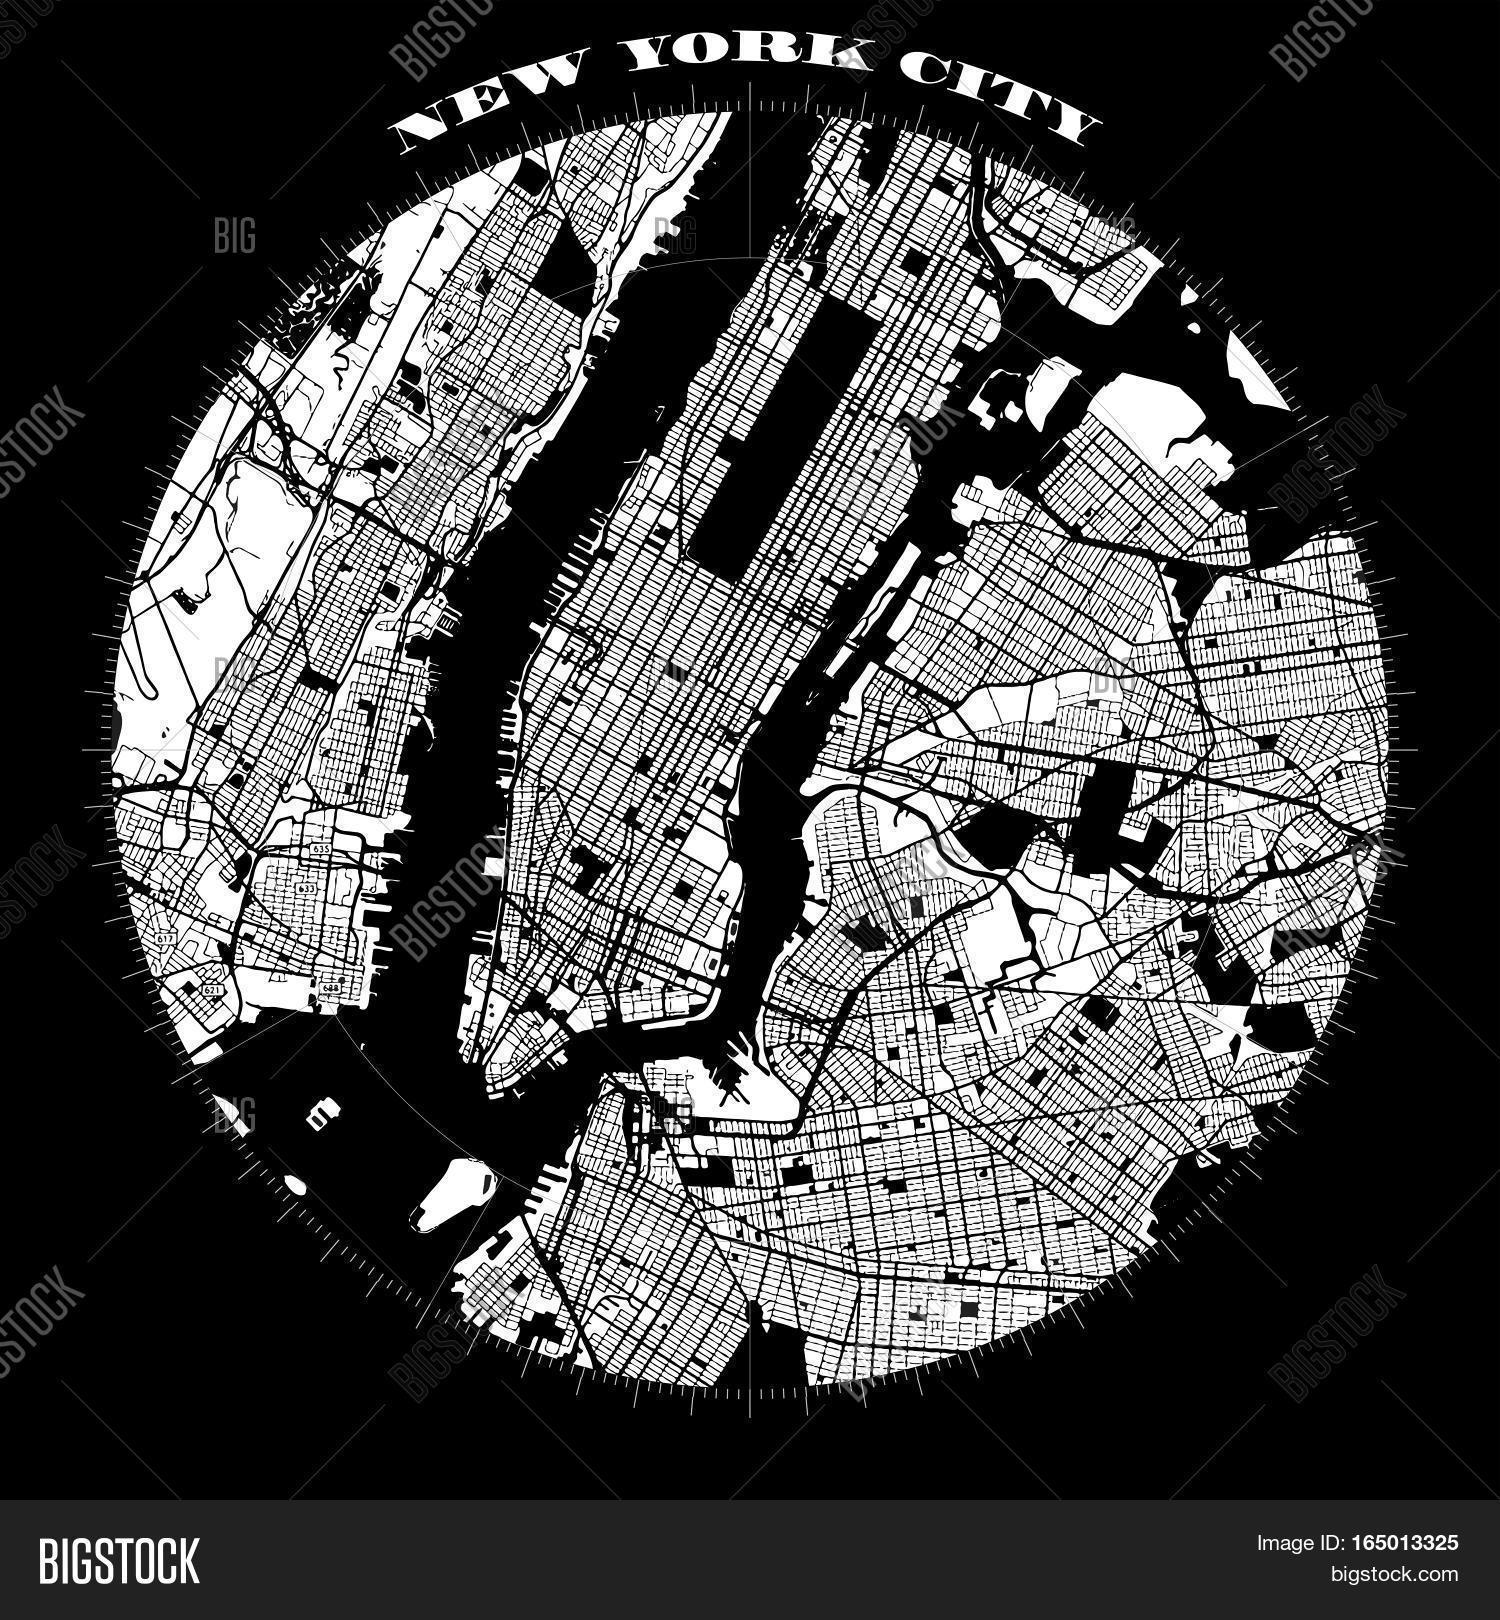 Free Map Of New York City.New York City Vector Photo Free Trial Bigstock